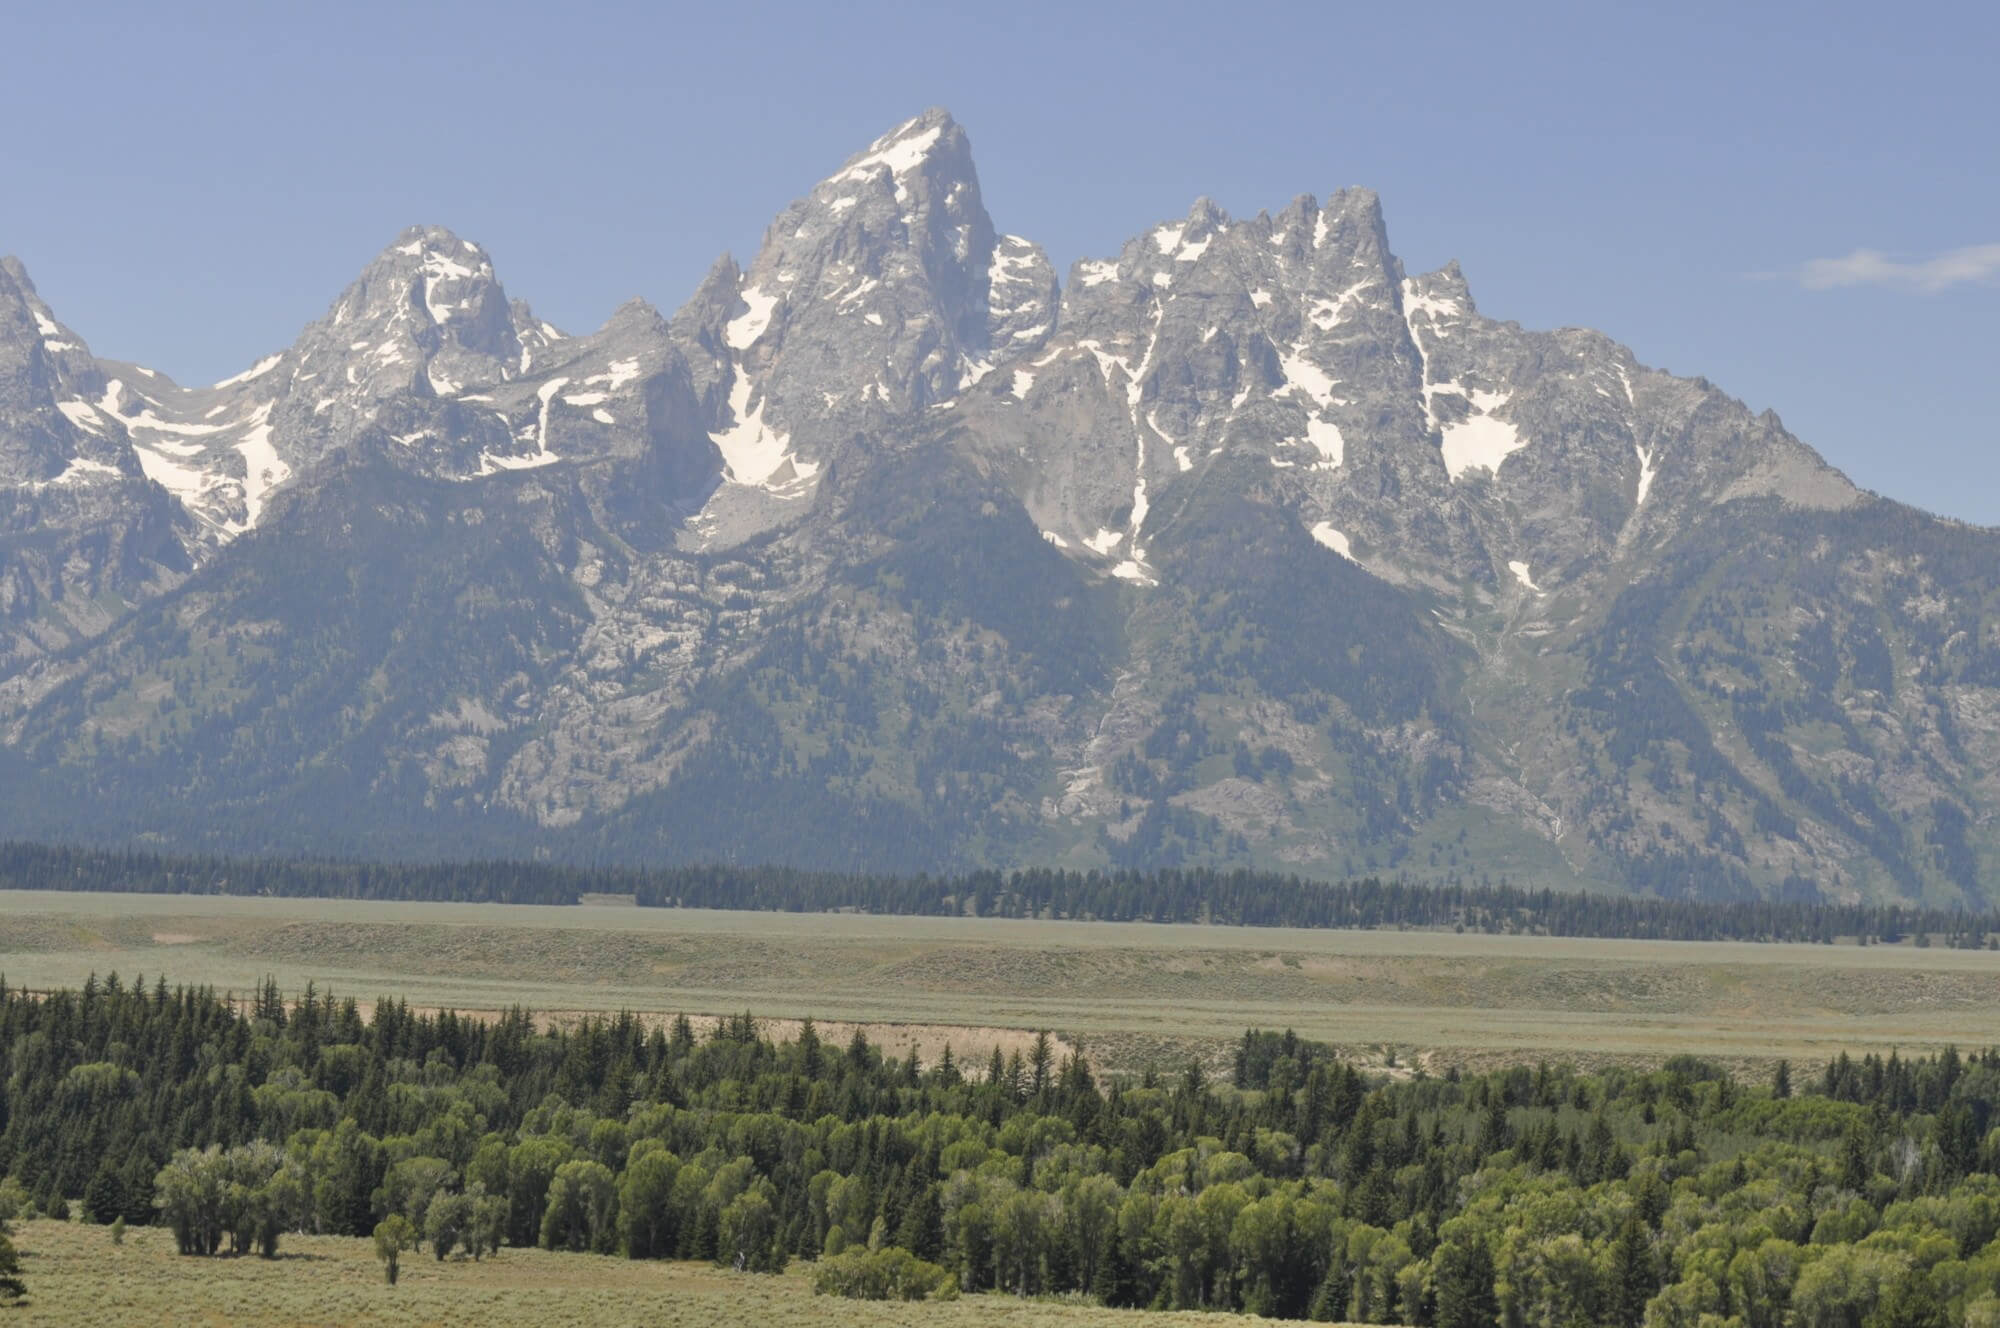 The Grand Tetons are a highlight of any visit to Jackson Hole, Wyoming.